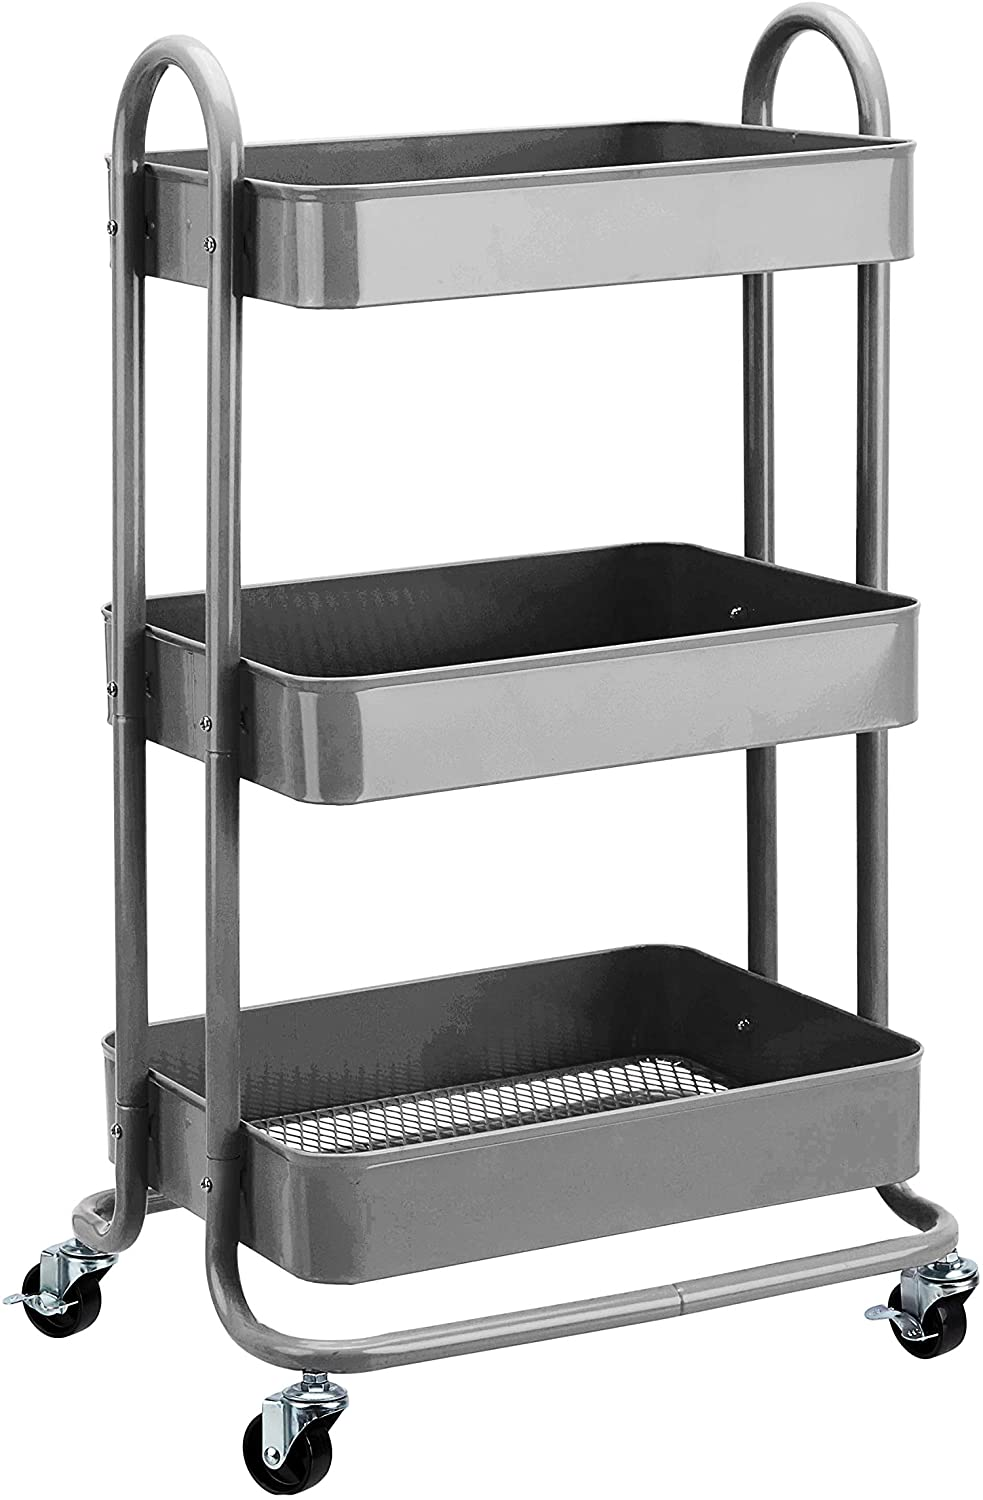 AmazonBasics 3-Tier Rolling Utility or Kitchen Cart - Charcoal